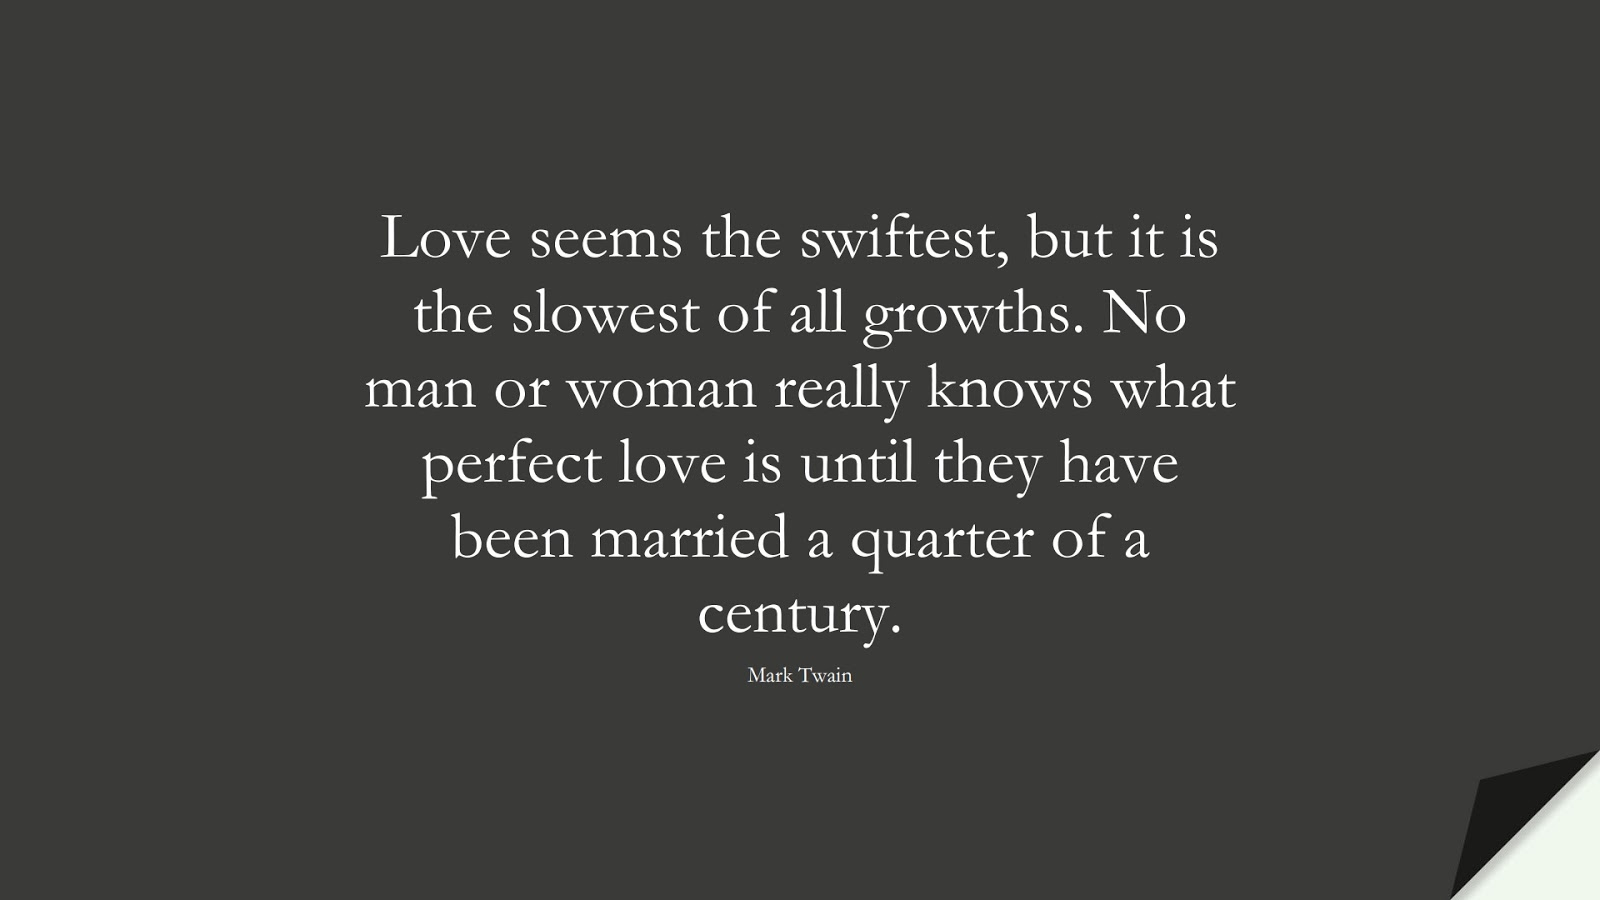 Love seems the swiftest, but it is the slowest of all growths. No man or woman really knows what perfect love is until they have been married a quarter of a century. (Mark Twain);  #RelationshipQuotes